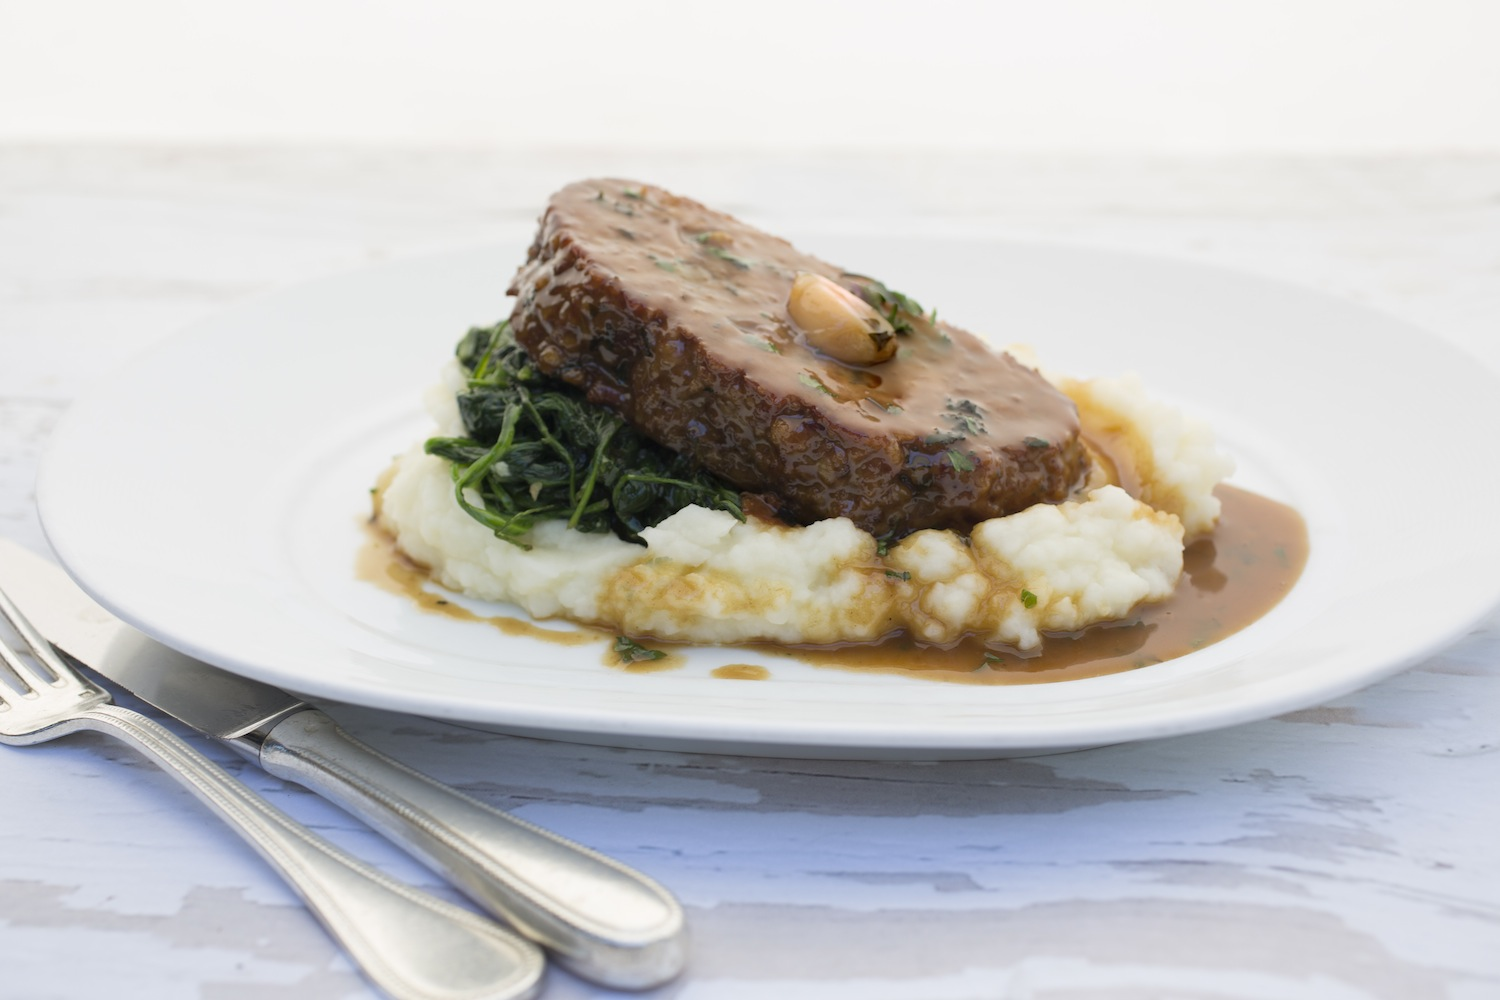 The 1770 House_Tavern Meatloaf, Spinach, Mashed Potatoes, Roasted Garlic Sauce_Photo Credit Robyn Lea-1